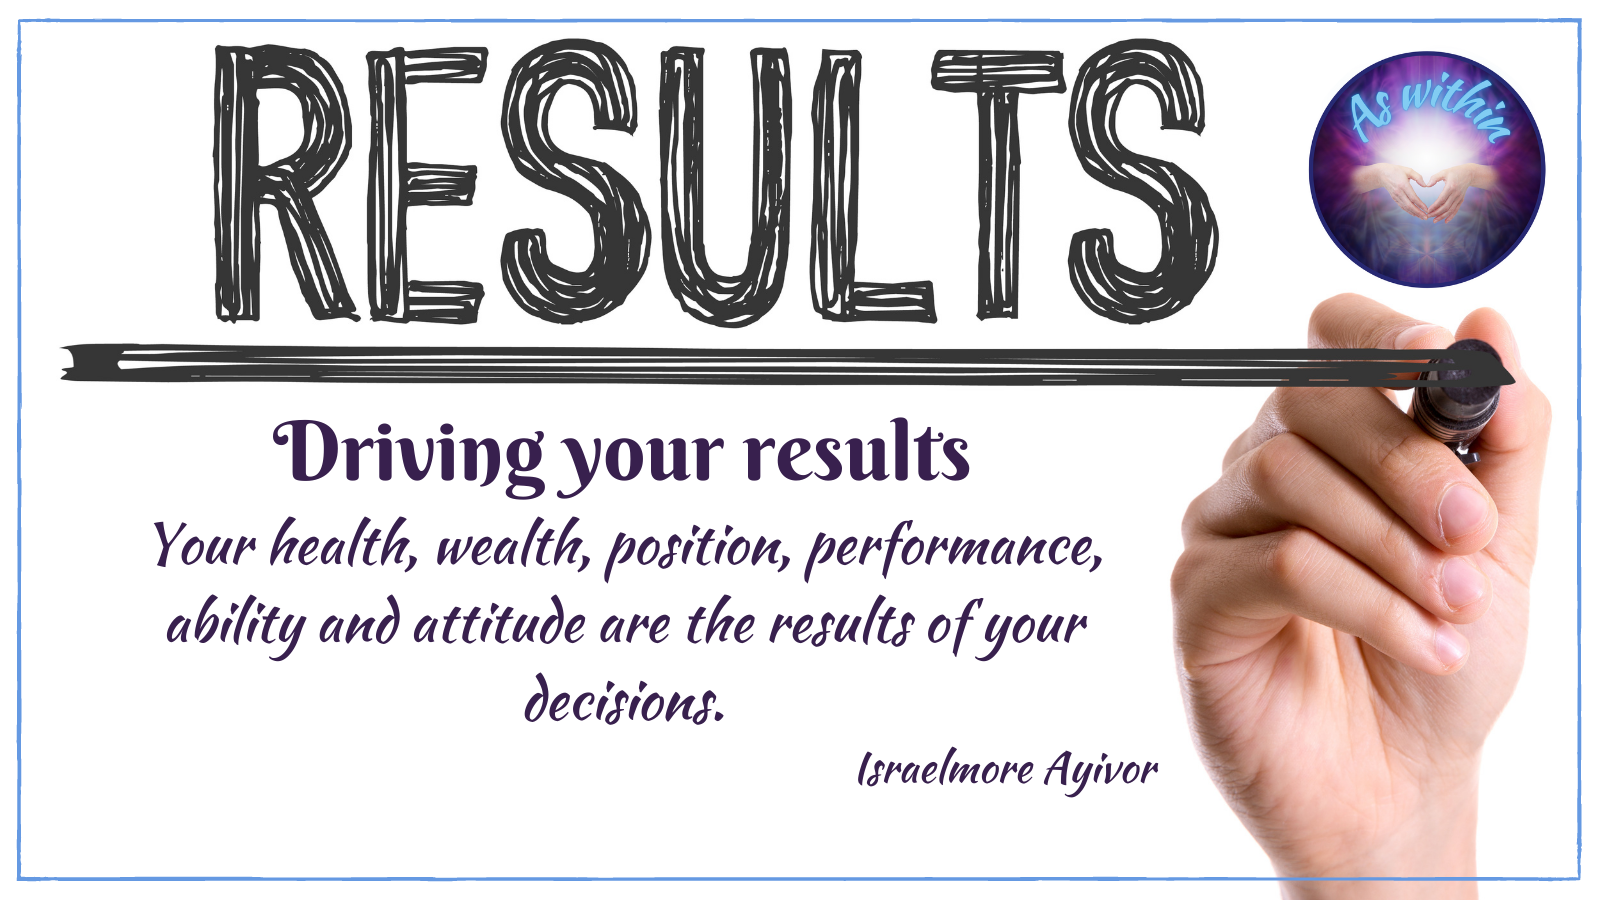 driving your results, diet and exercise, my health journey, motherhood, Your health, wealth, position, performance, ability and attitude are the results of your decisions. Israelmore Ayivor